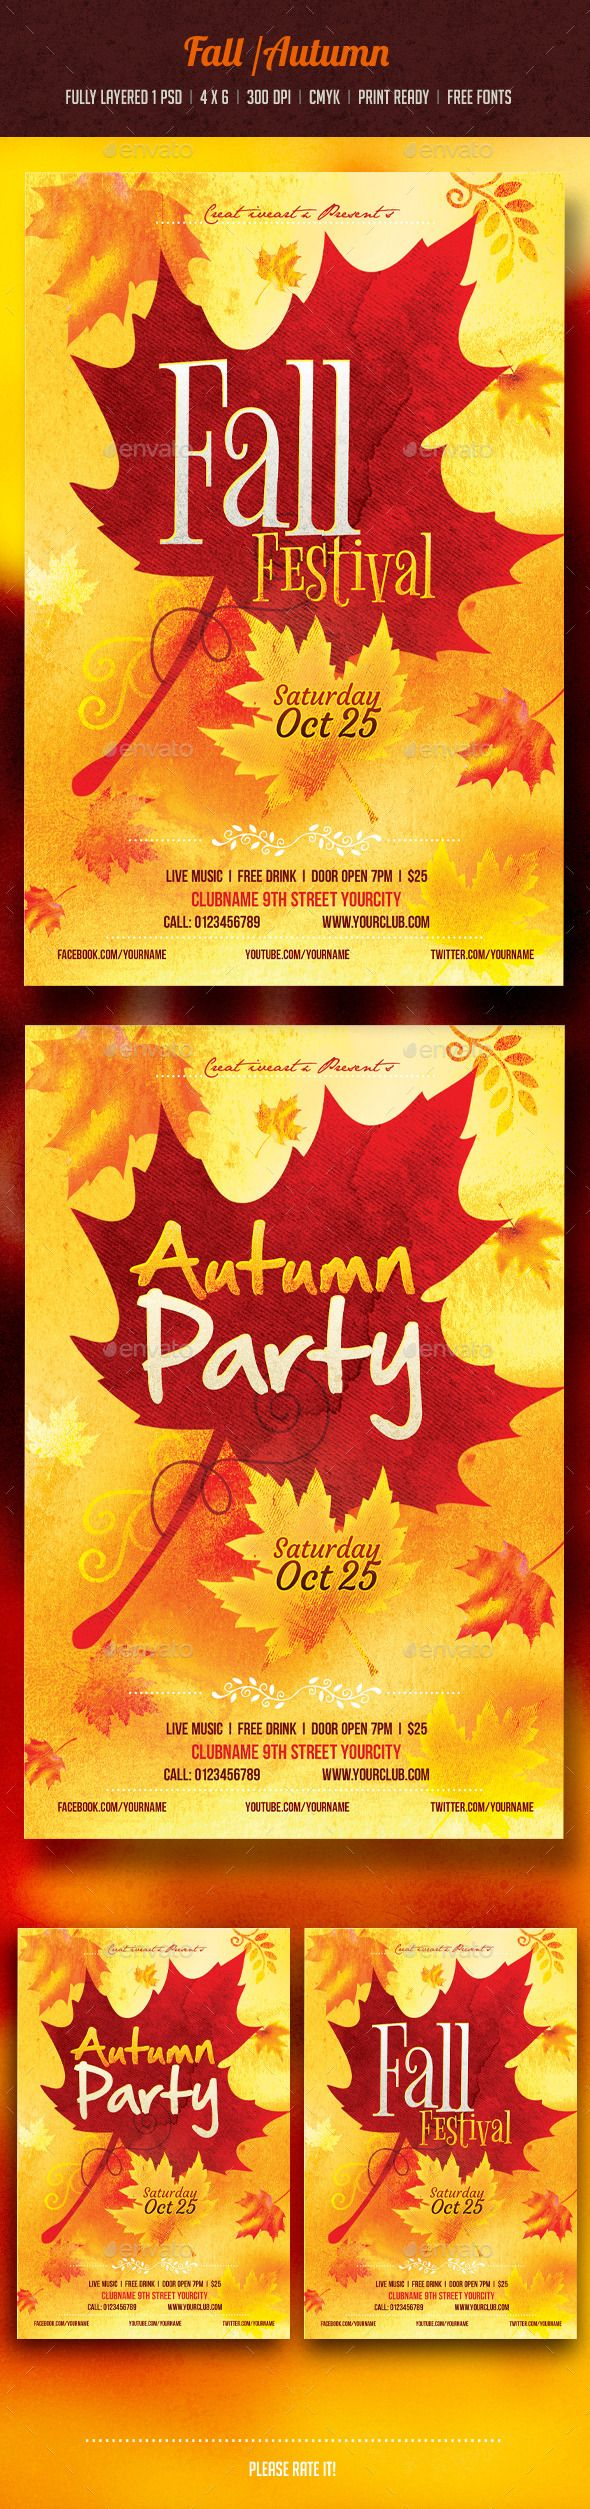 17 best images about flyers adam hills poster autumn fall flyer